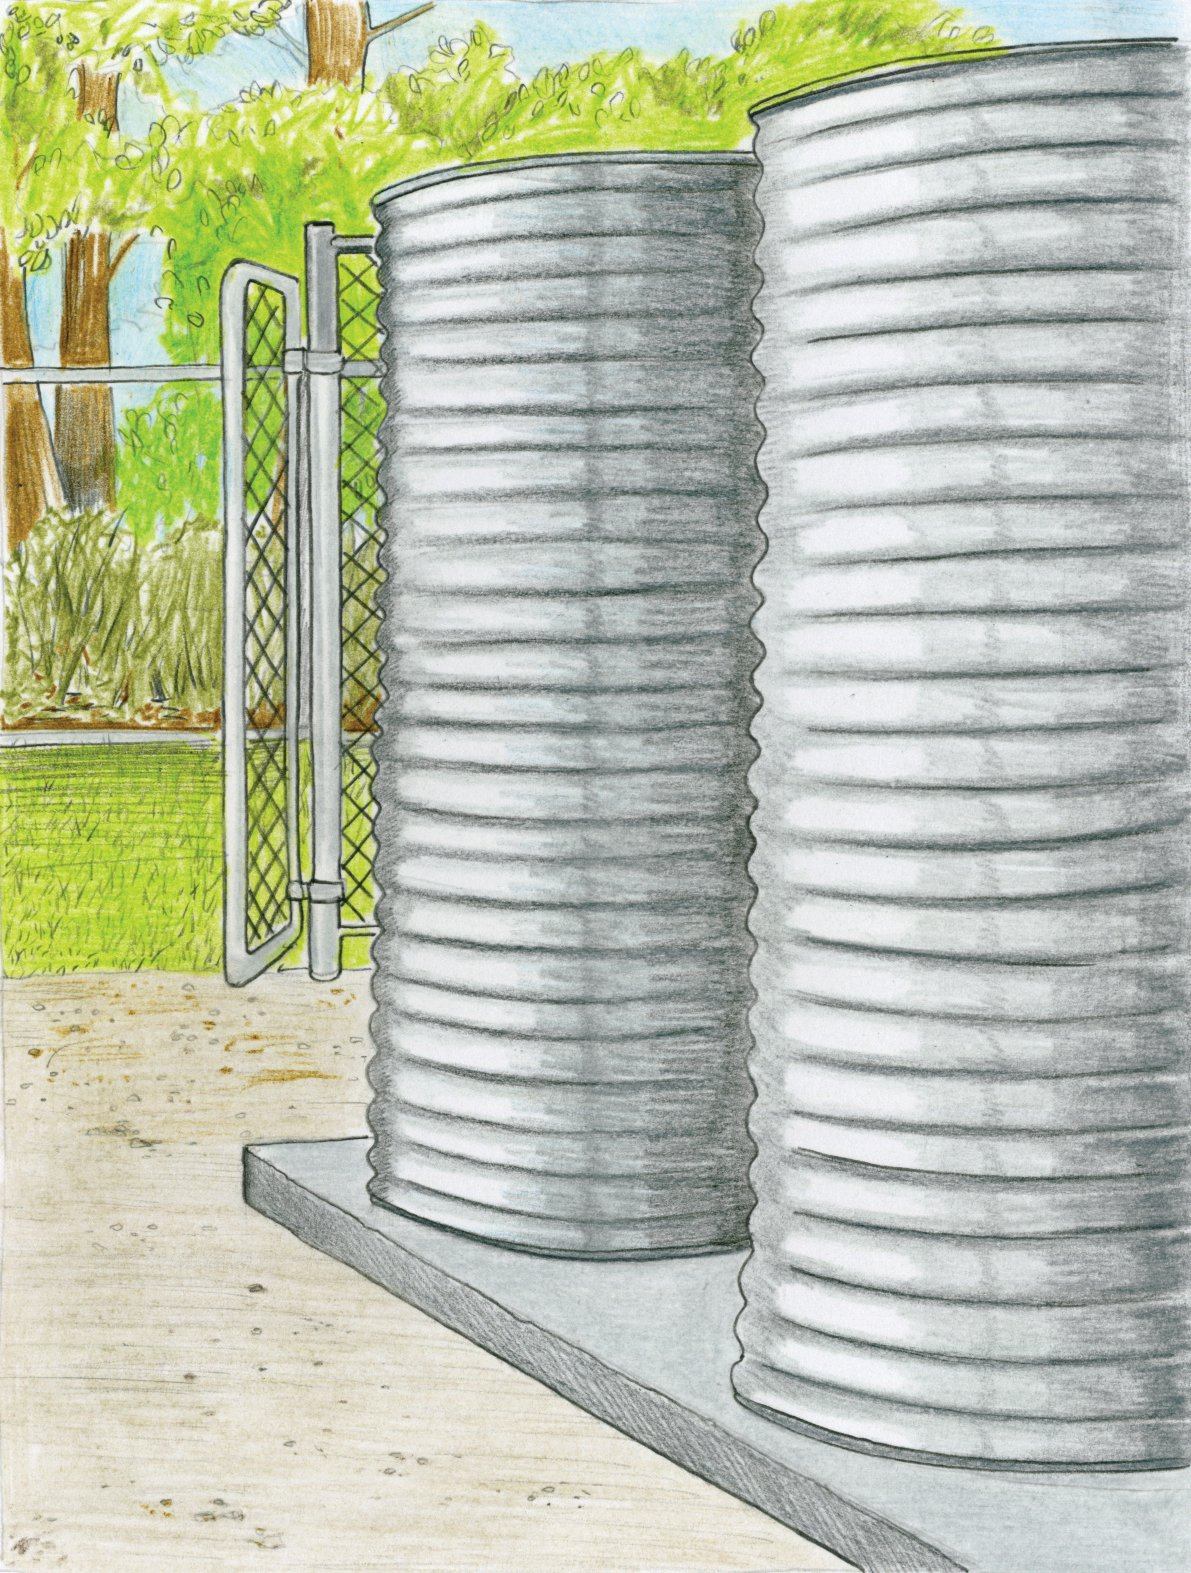 With serious water restrictions in drought-stricken Australia, Ferguson needed these tanks so that the new bush garden surrounding her house would flourish. Filled with rainwater draining off the roof and snugly set intothe south side of the house, her two 1,300-gallon Bluescope tanks also service the toilets and outdoor shower.